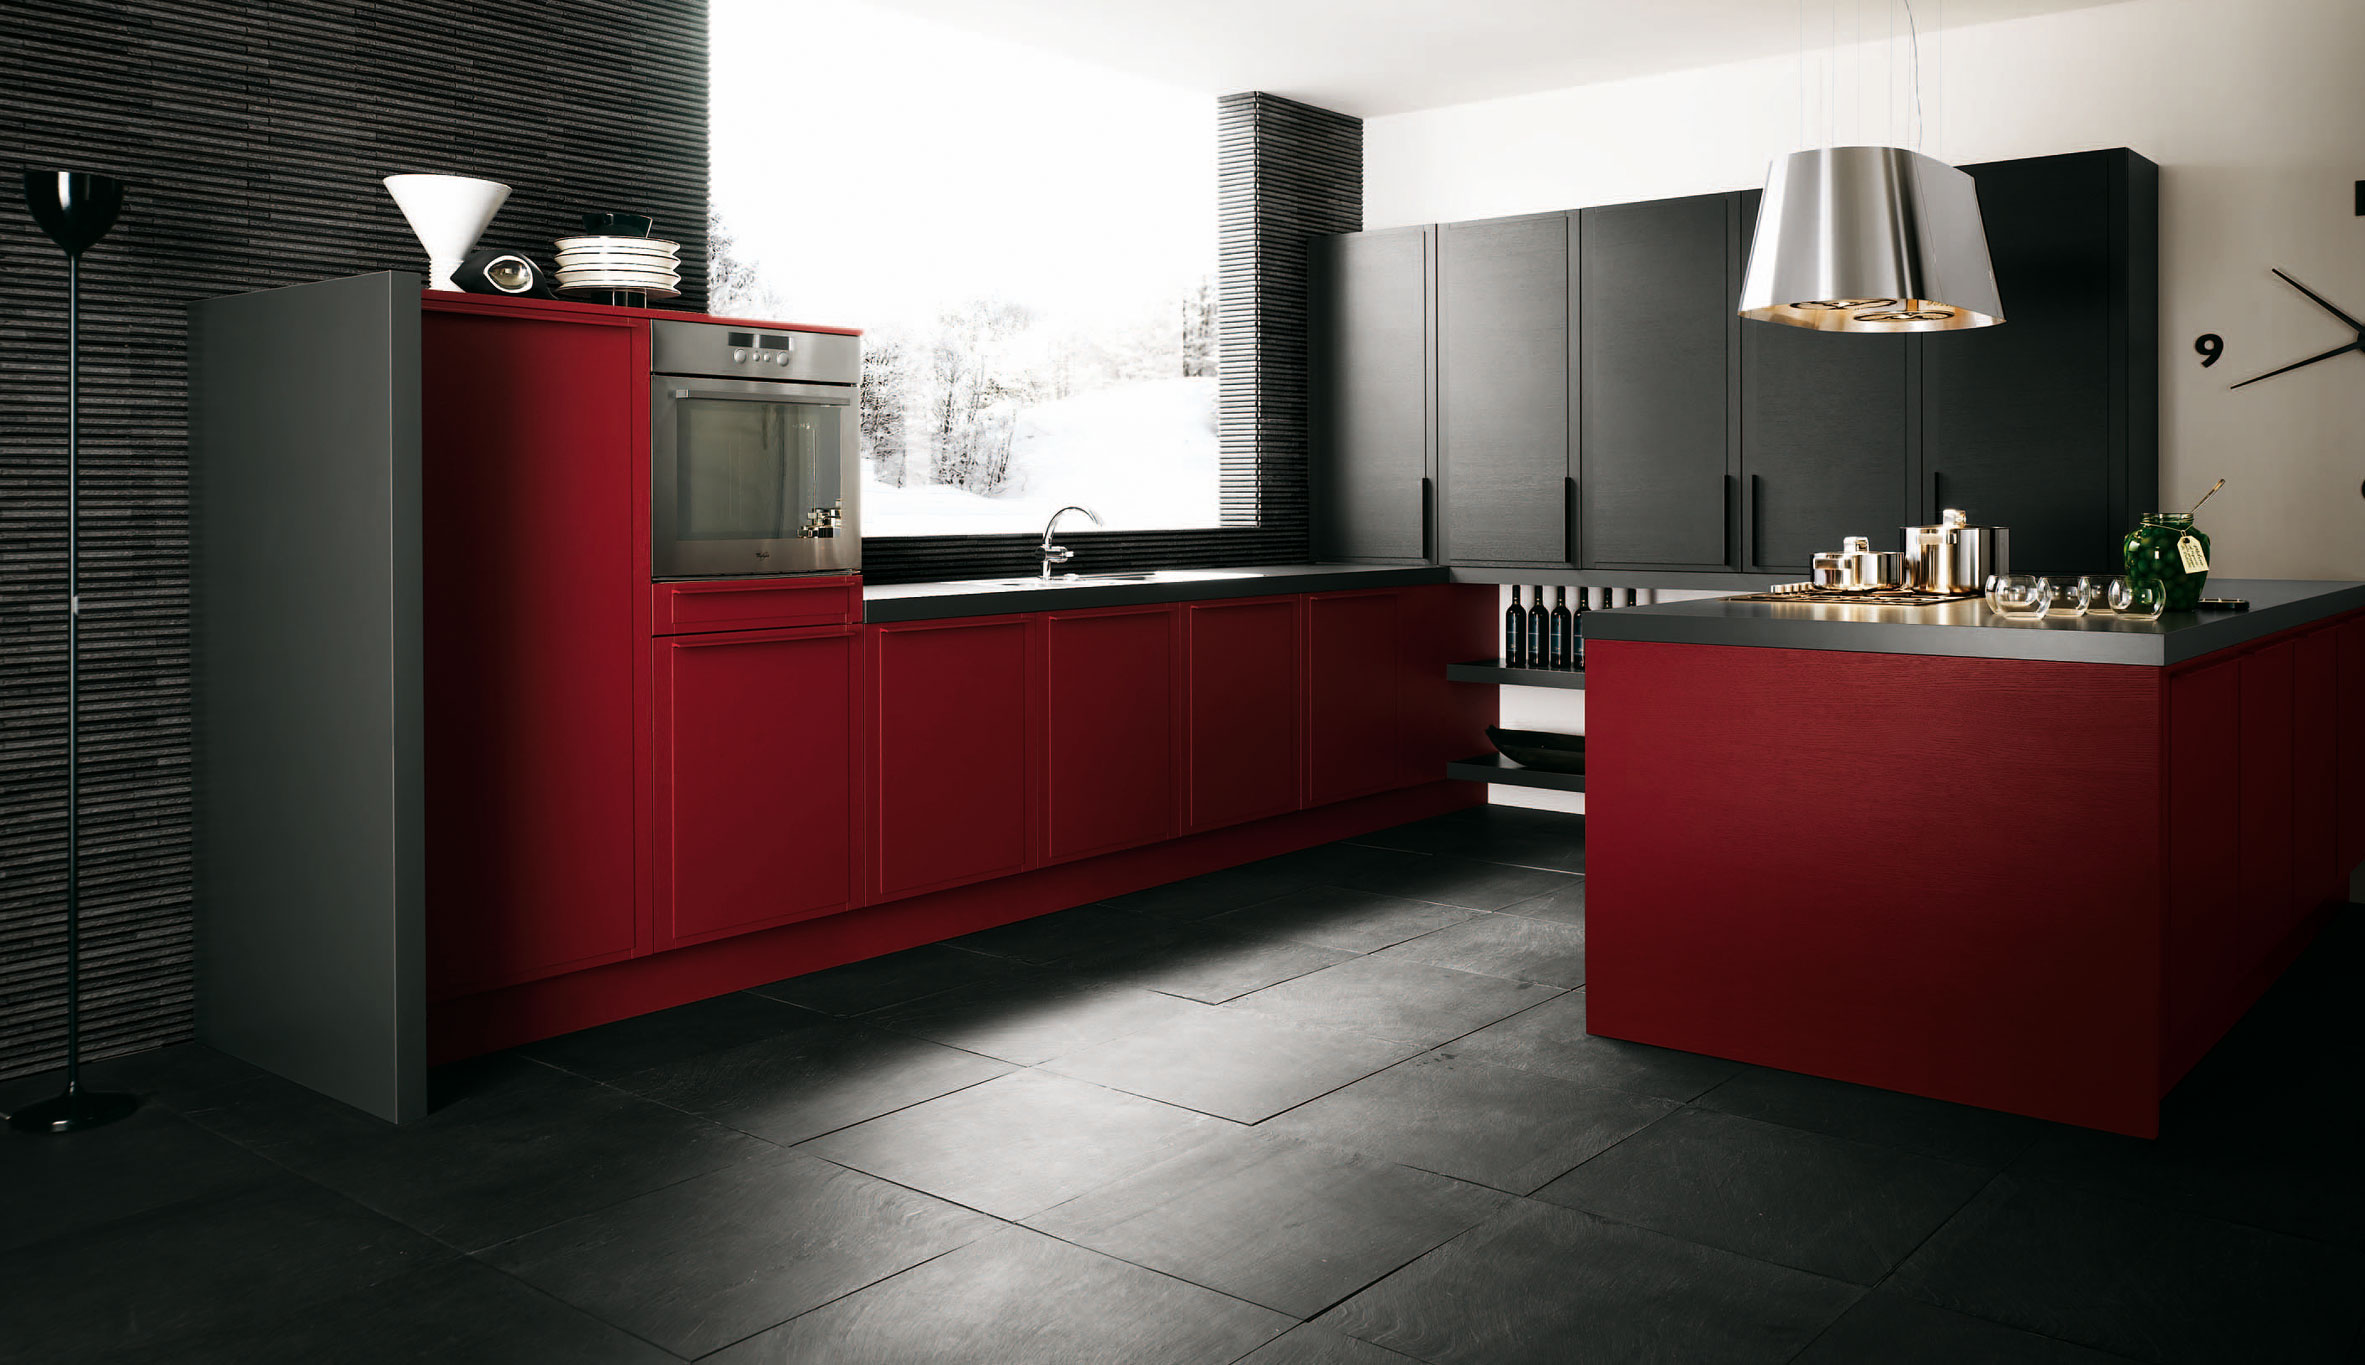 Dark red kitchen decor - Red and white kitchen decor ...